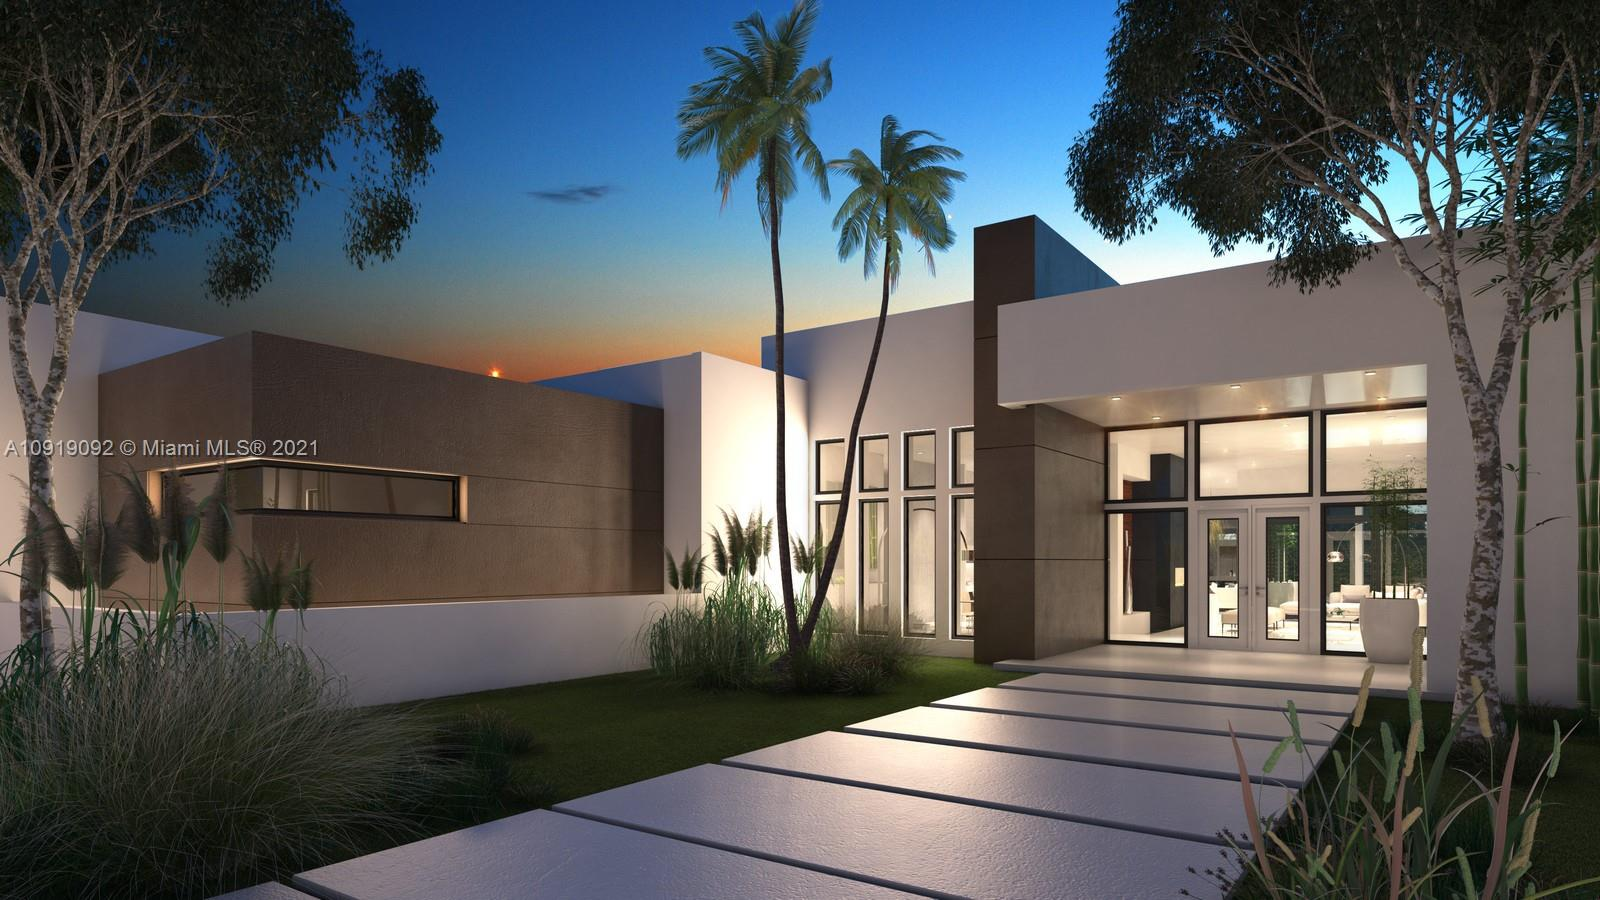 BRAND NEW CONSTRUCTION (Ready by Abril 3oth 2021), ultra contemporary total 7,000 sqf ONE STORY wonder, designed by Alberto Gonzalez, built on a corner 33,000 sqf lot.  Open floor plan, offering great integration, open layout, featuring high glass windows, natural light. This house has high 13 feet ceiling throughout. Amazing finishes, with European porcelain floors, high end appliances (Wolf, Melle, and SubZero), 6 rooms + 5.5 bathrooms, a 20x40 large pool, summer kitchen, with private terraces in most rooms, 3 covered garages plus plenty of space to park 20 more in front. 1 Year builder Warranty.